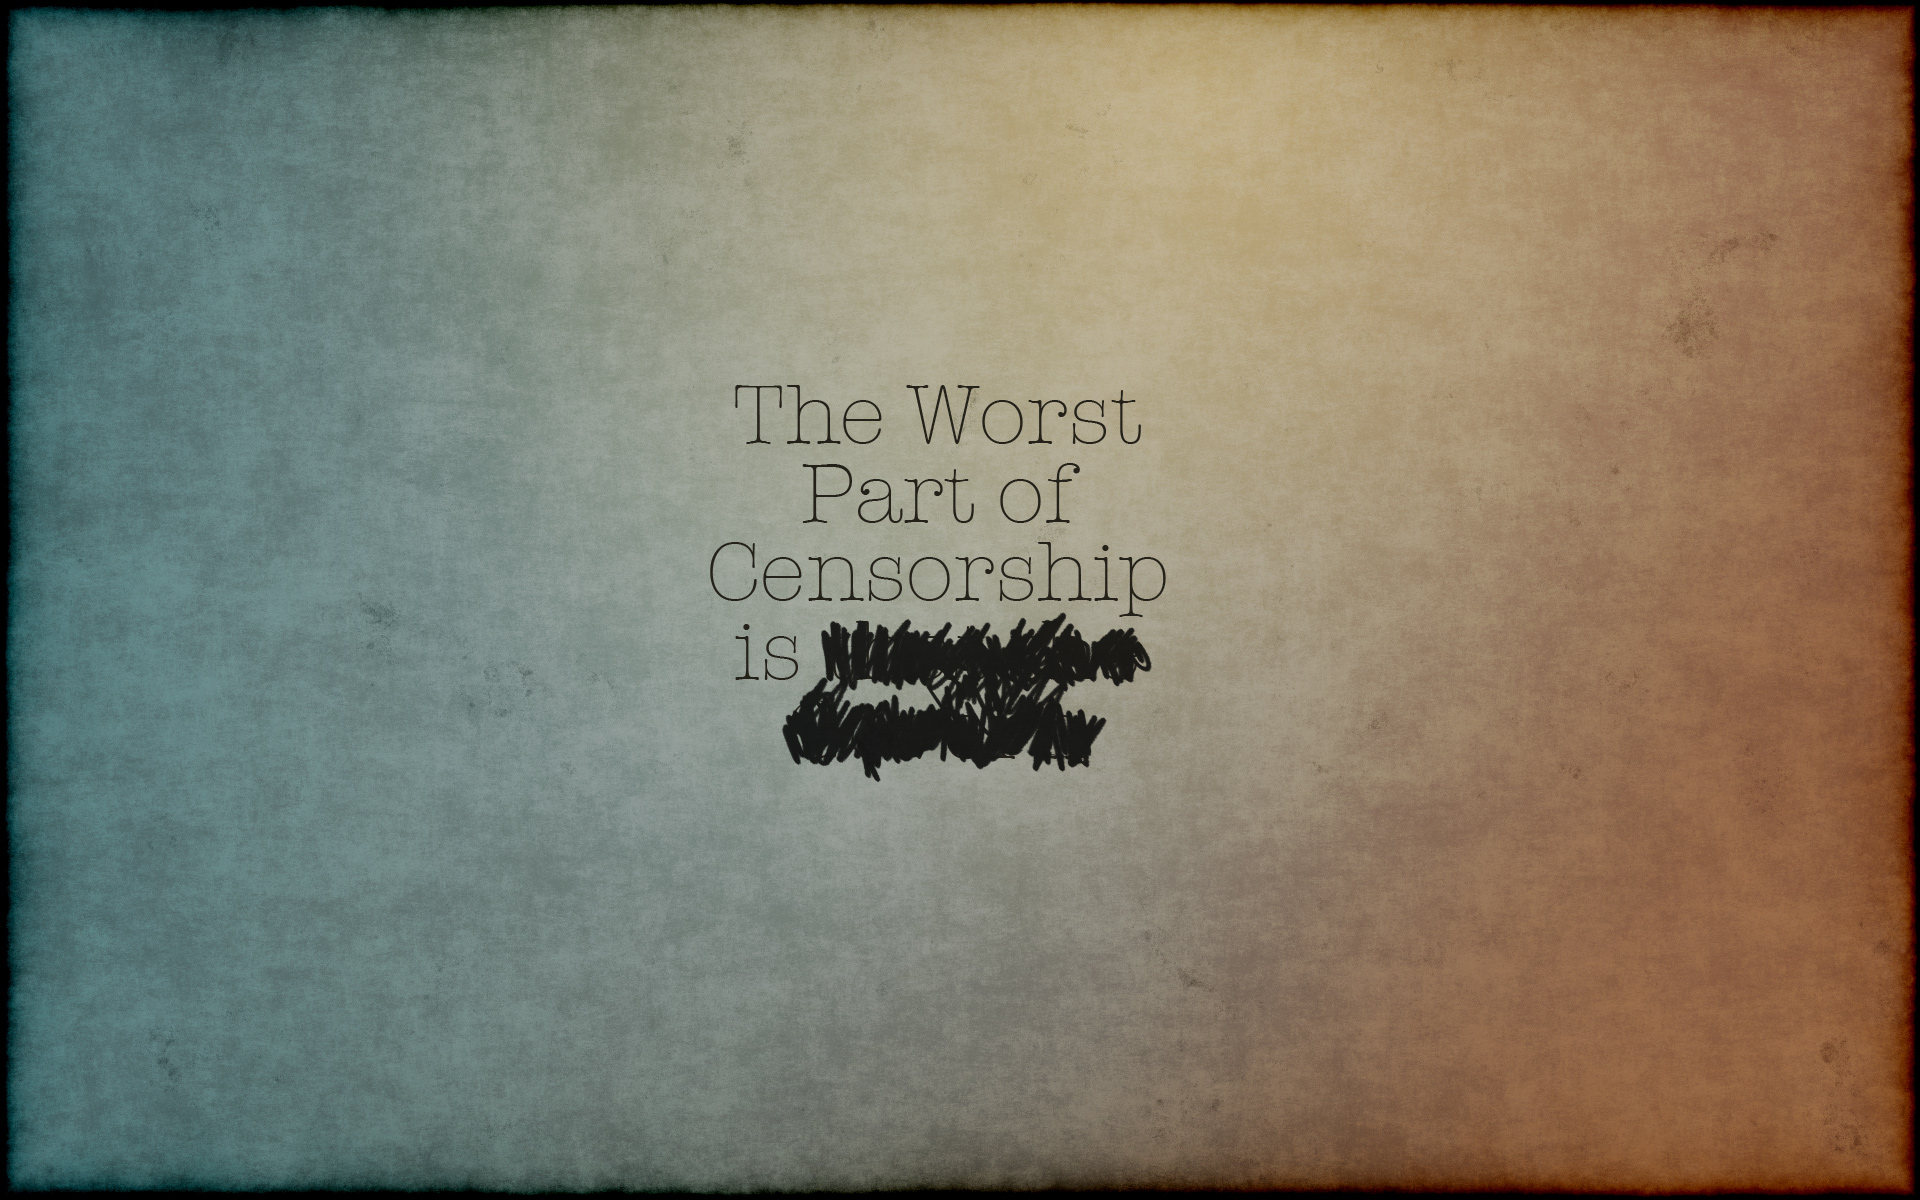 Worst part of censorship